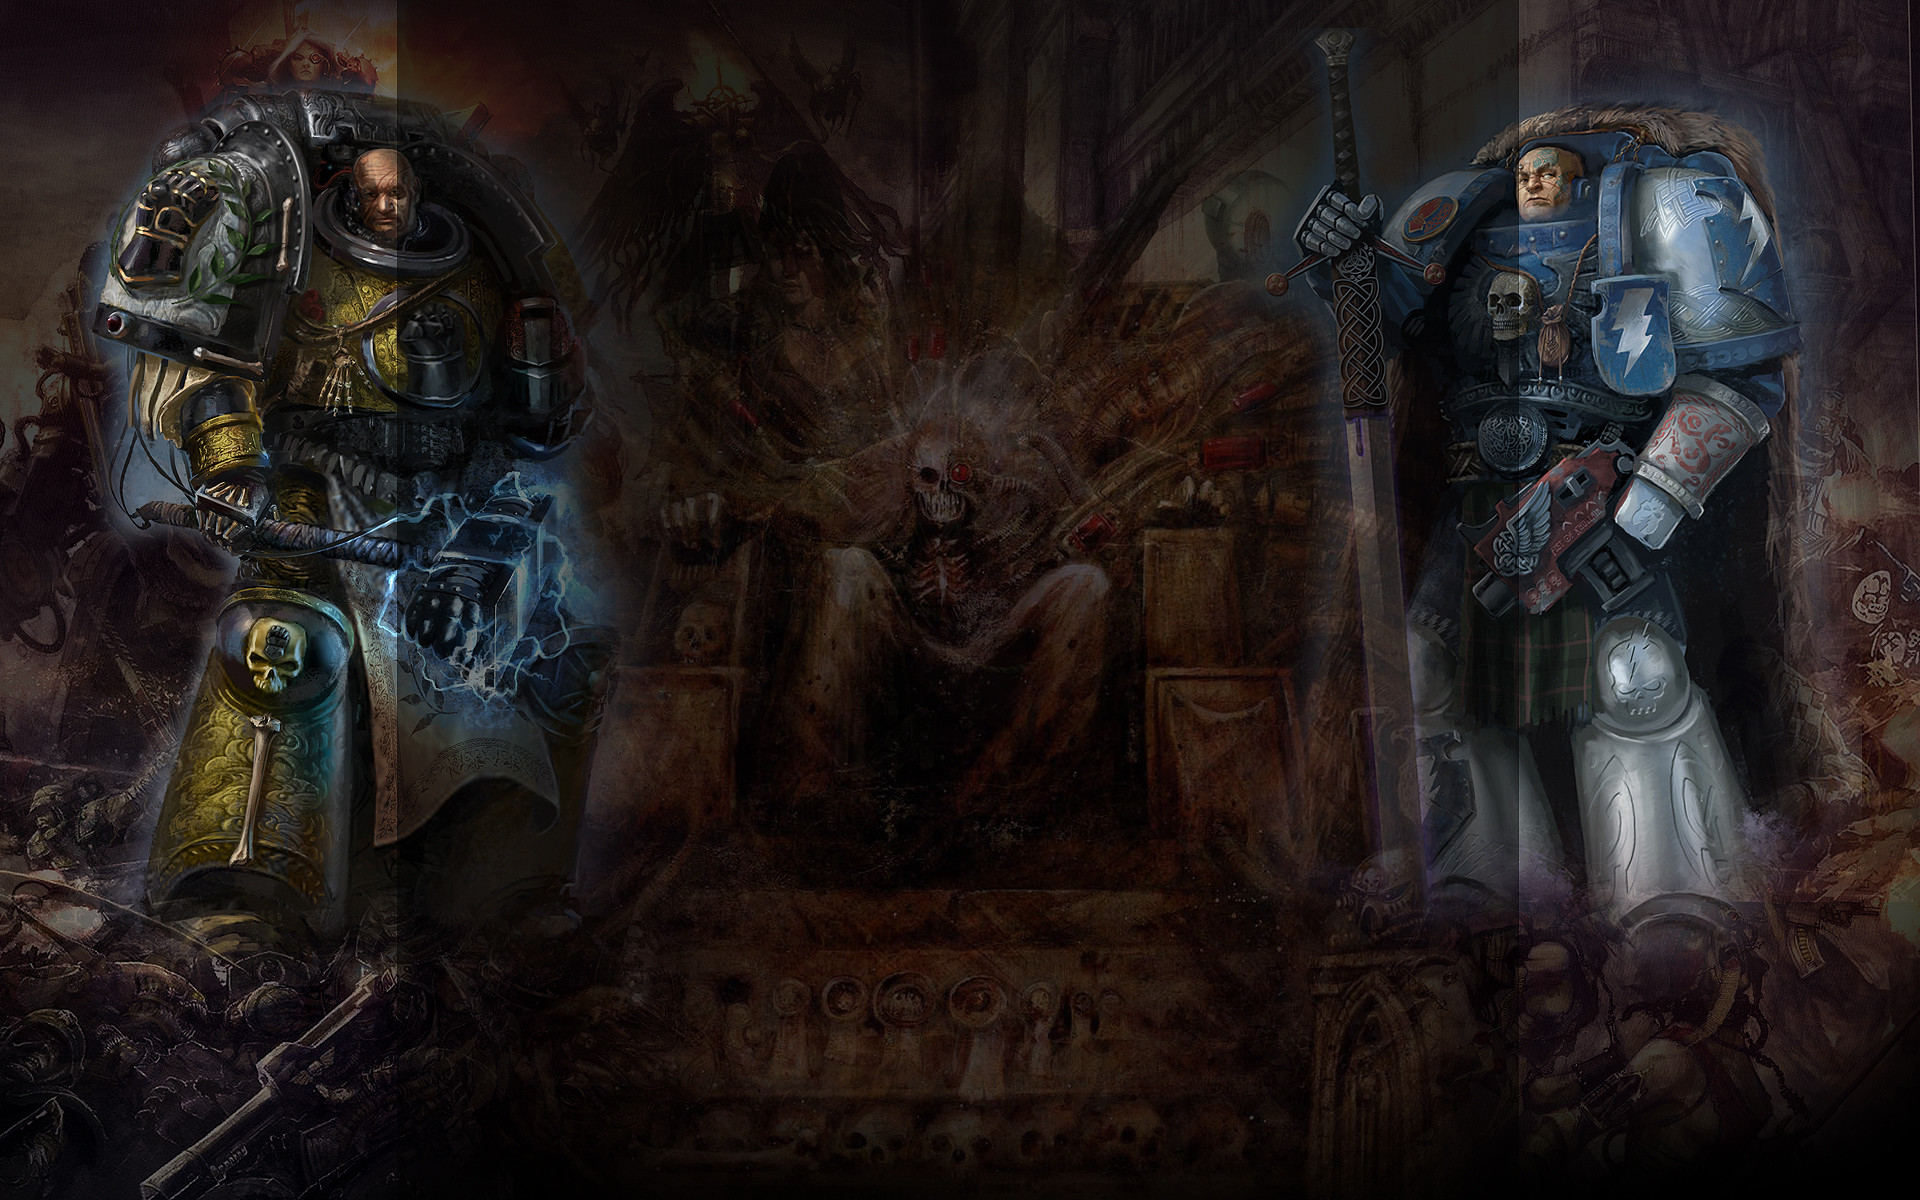 1920x1200 imperial fists wallpaper - photo #36. Bjorns Banners